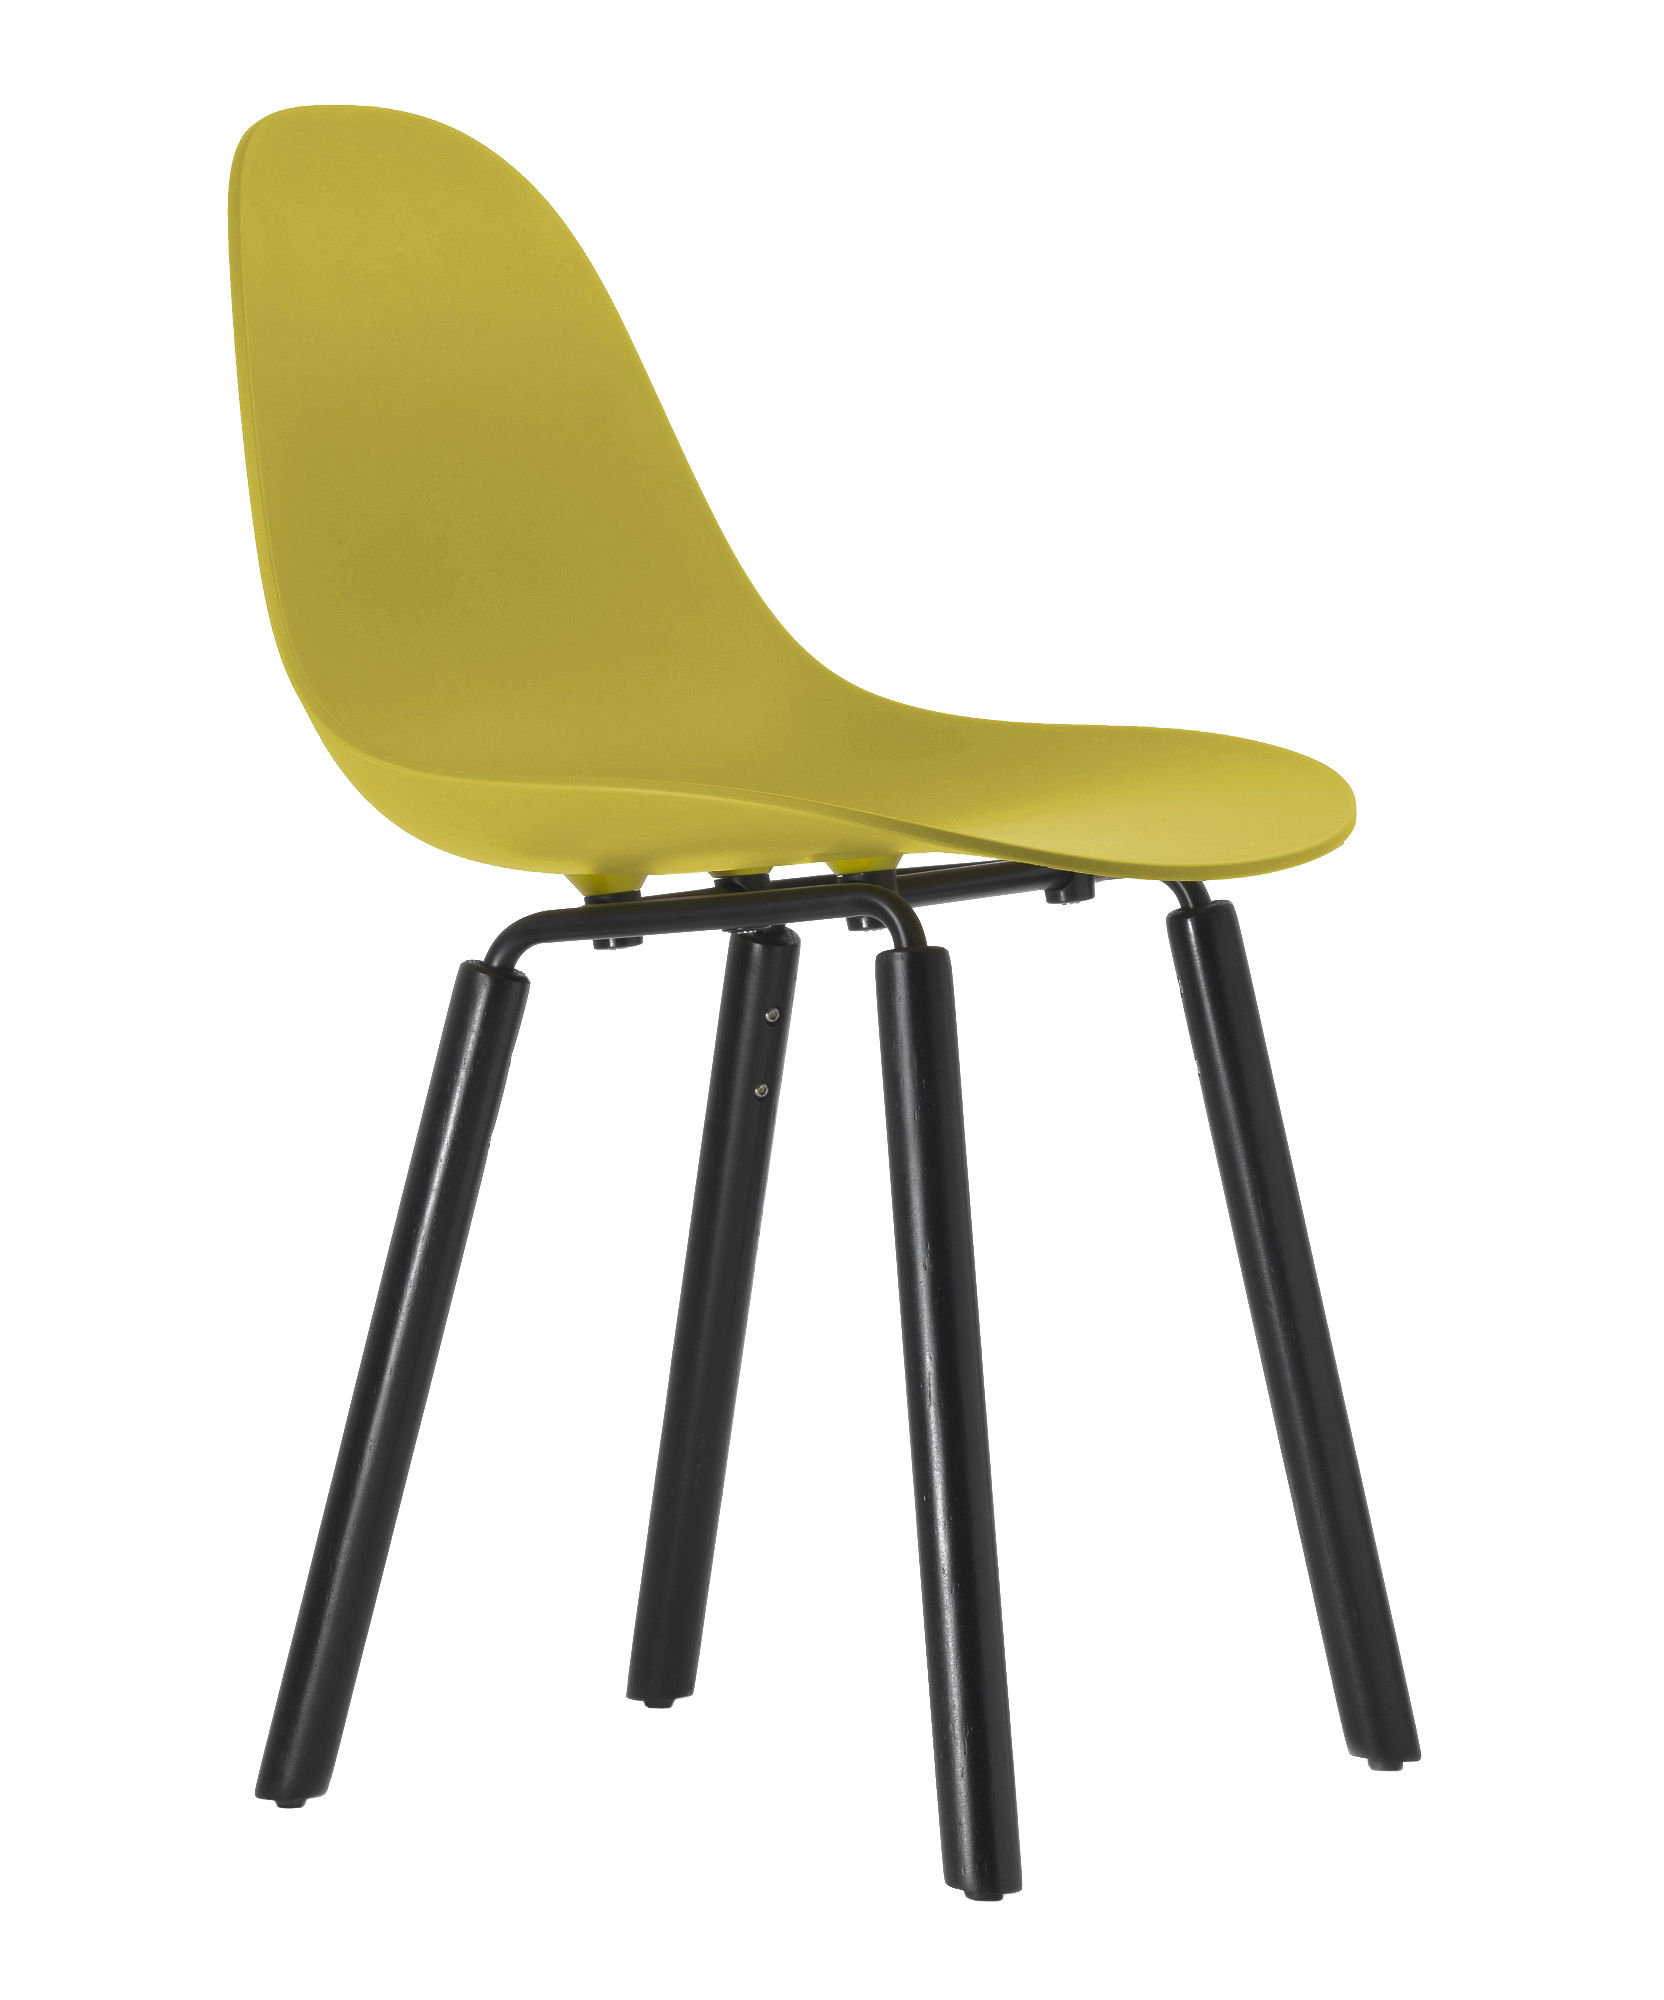 Furniture - Chairs - TA Chair - Wood legs by Toou - Yellow / Black legs - Lacquered metal, Painted oak, Polypropylene